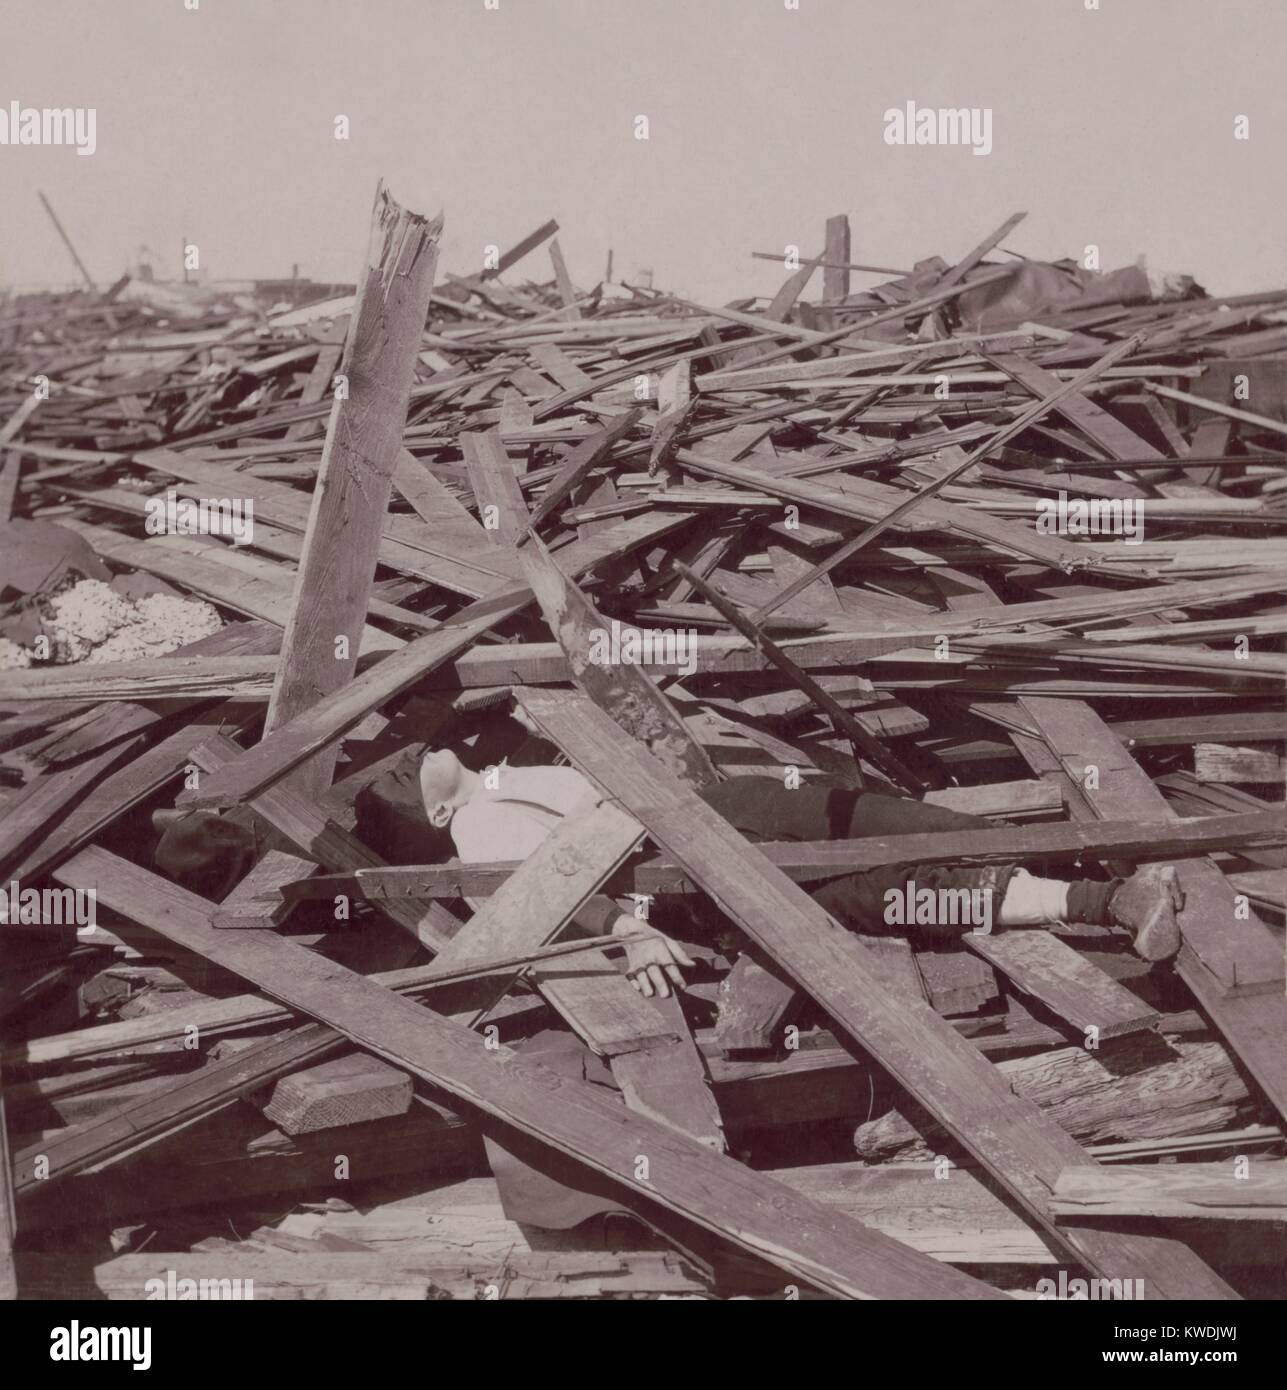 A dead man under wood planks after the Galveston, Texas, hurricane of Sept 8, 1900. 8,000 people are believed killed, - Stock Image